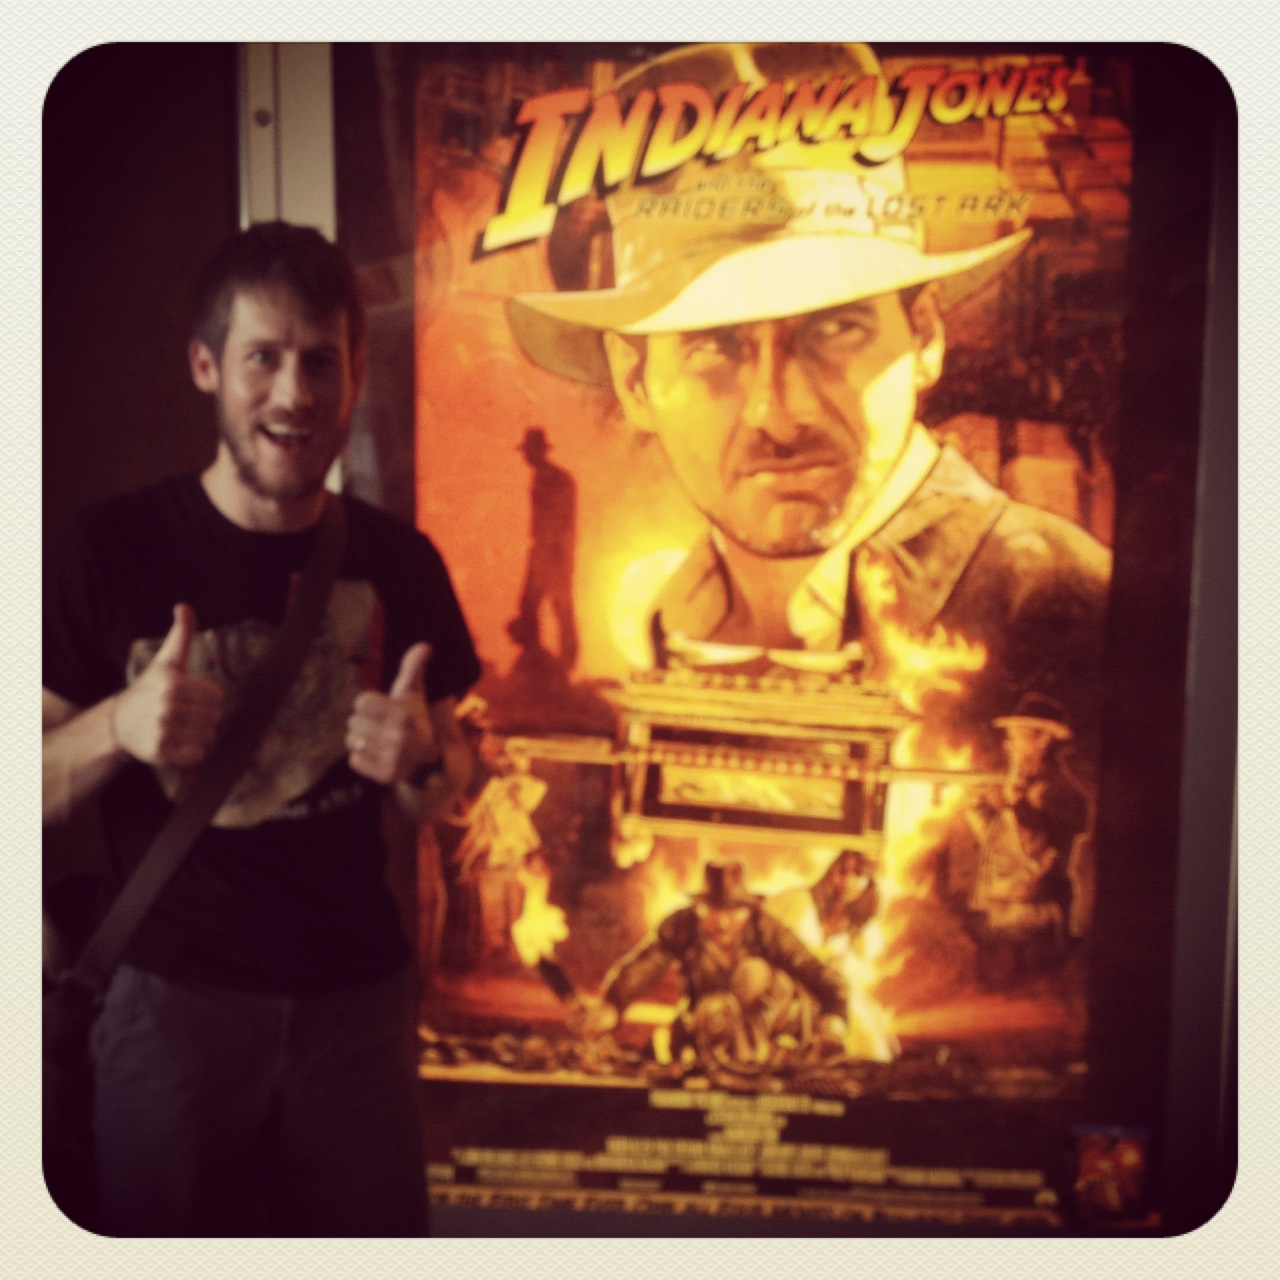 I went to see  Raiders  during its recent re-release. It was great.